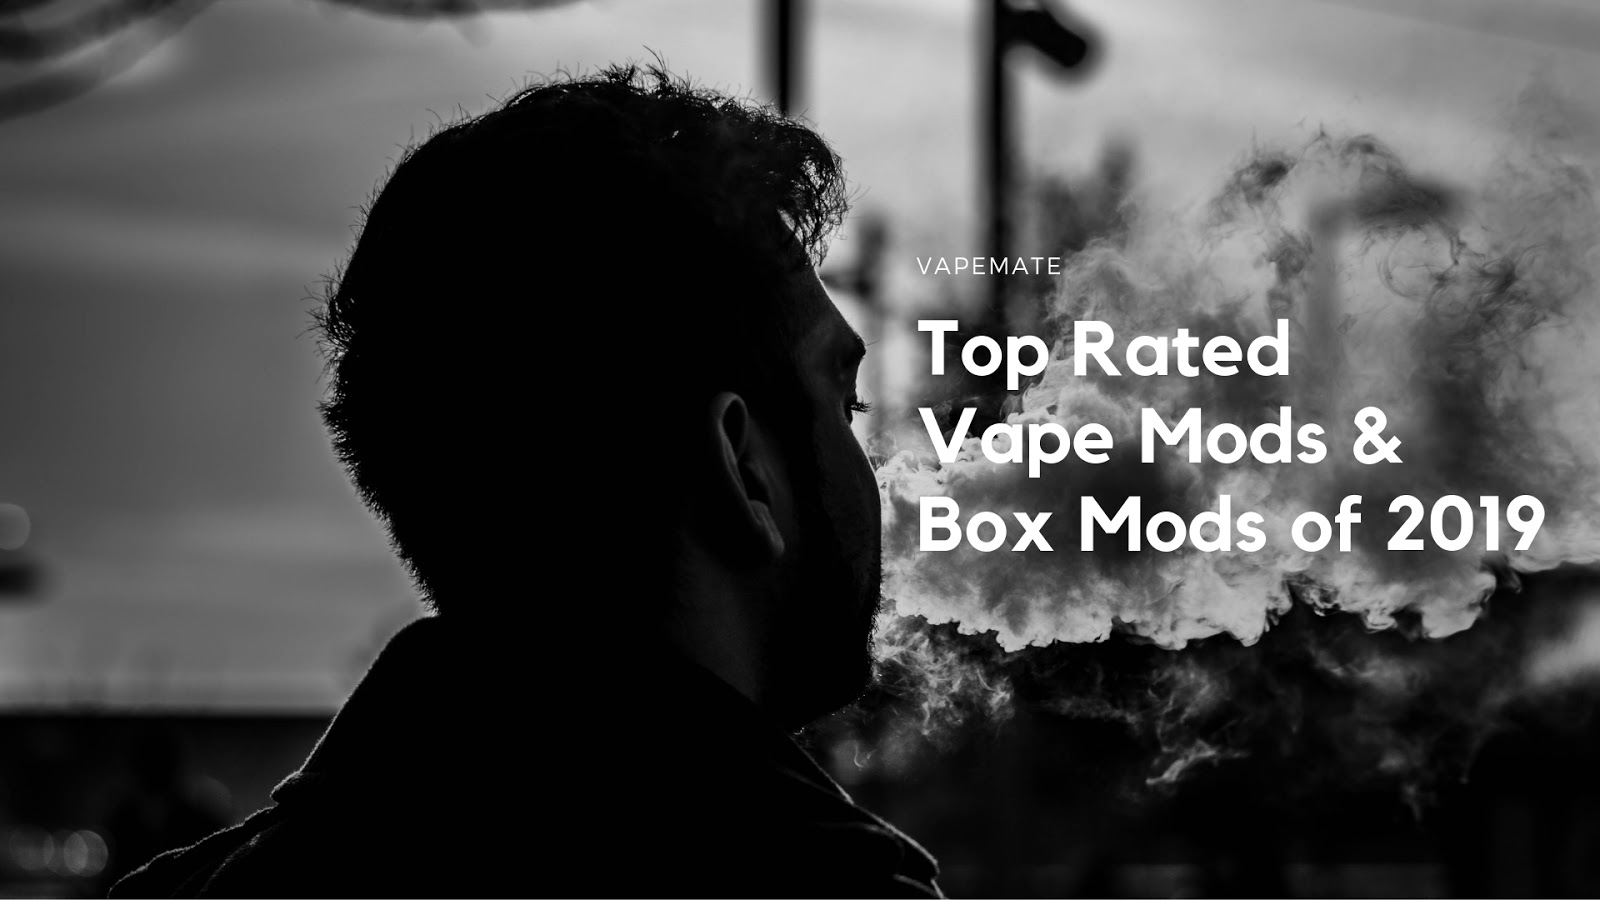 Top Rated Vape Mods of 2019, game changers in the vape world